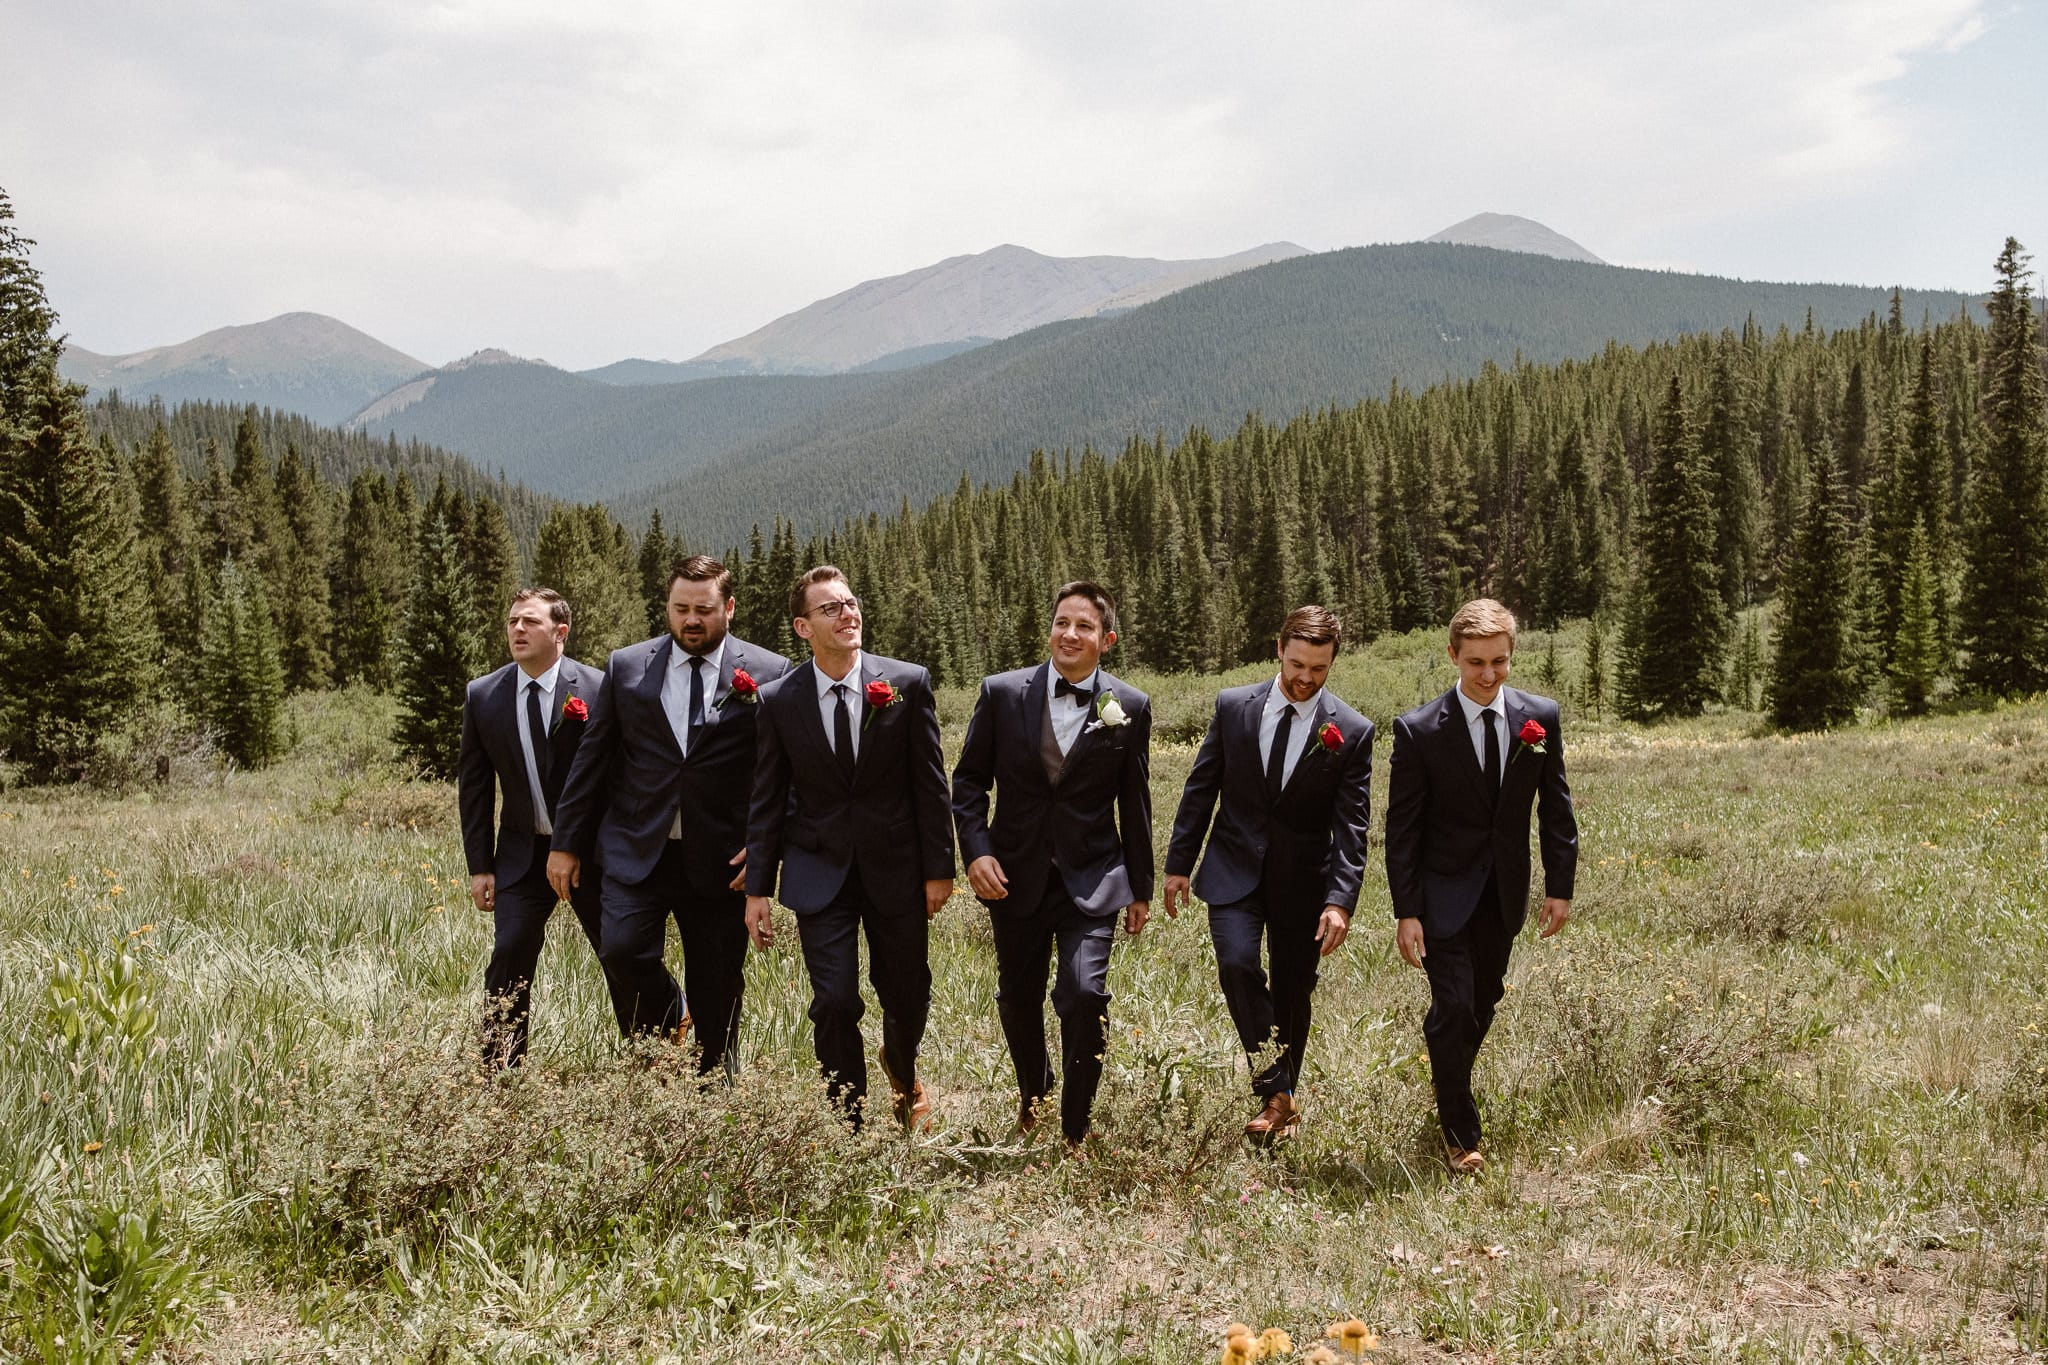 Lodge at Breckenridge Wedding Photographer, Colorado mountain wedding photographer, intimate wedding, groom with groomsmen, dark suits, red rose boutonnieres